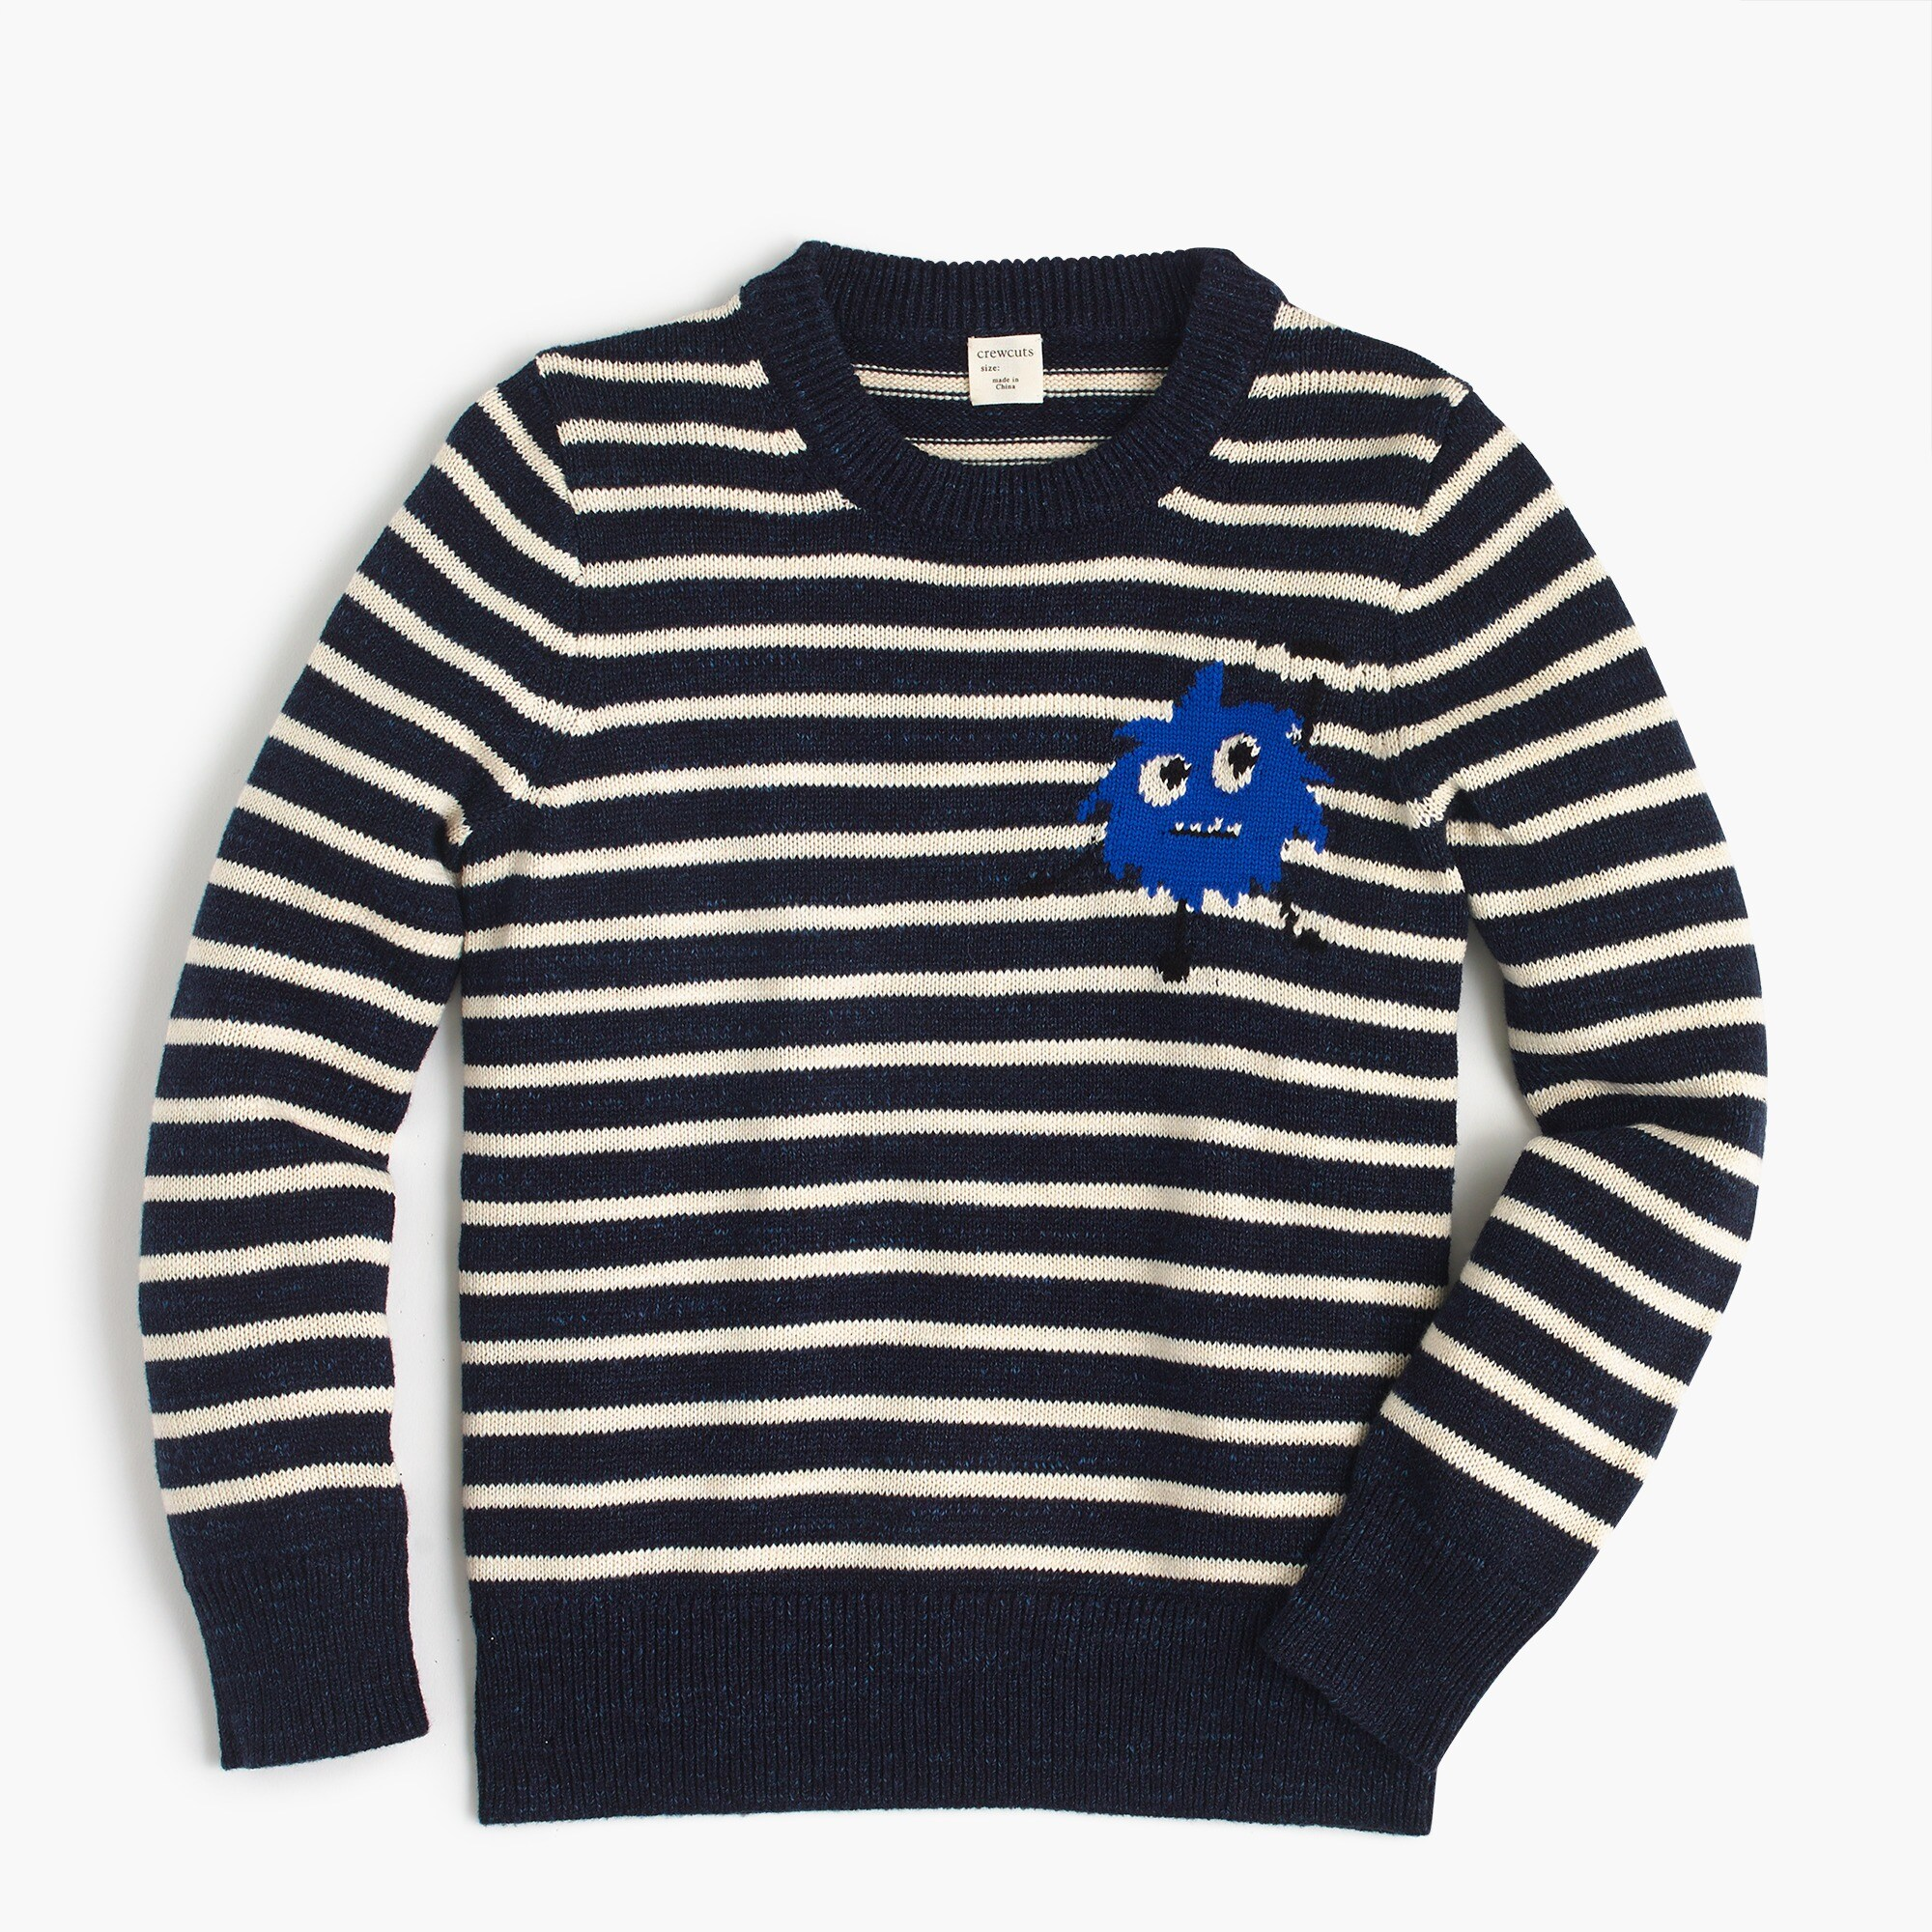 Max the Monster™ boys' striped cotton crewneck